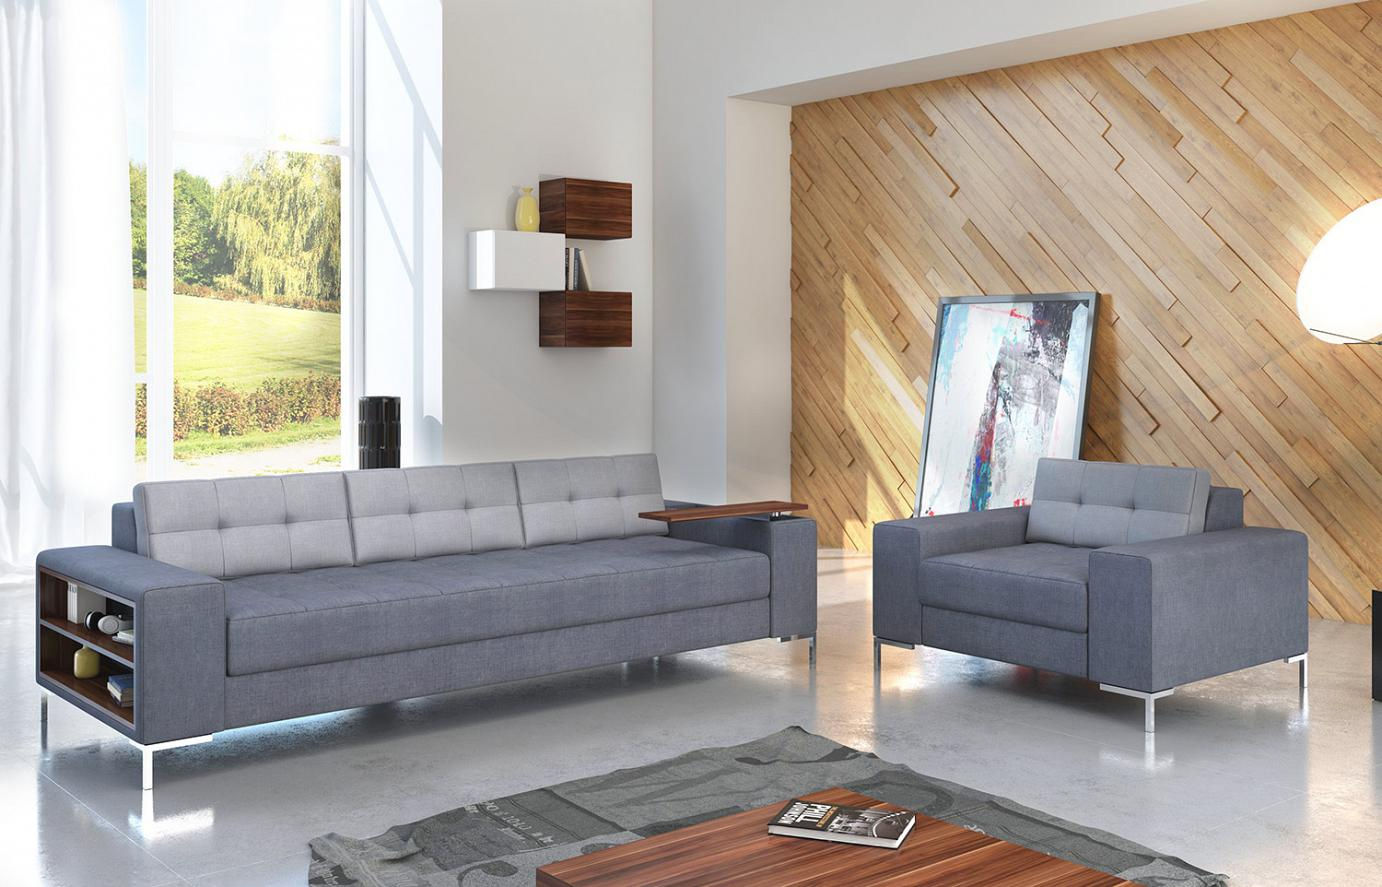 sofa 250cm sleeper sofas made in the usa perfection living room furniture set and armchair modern 250 cm with elements of wood